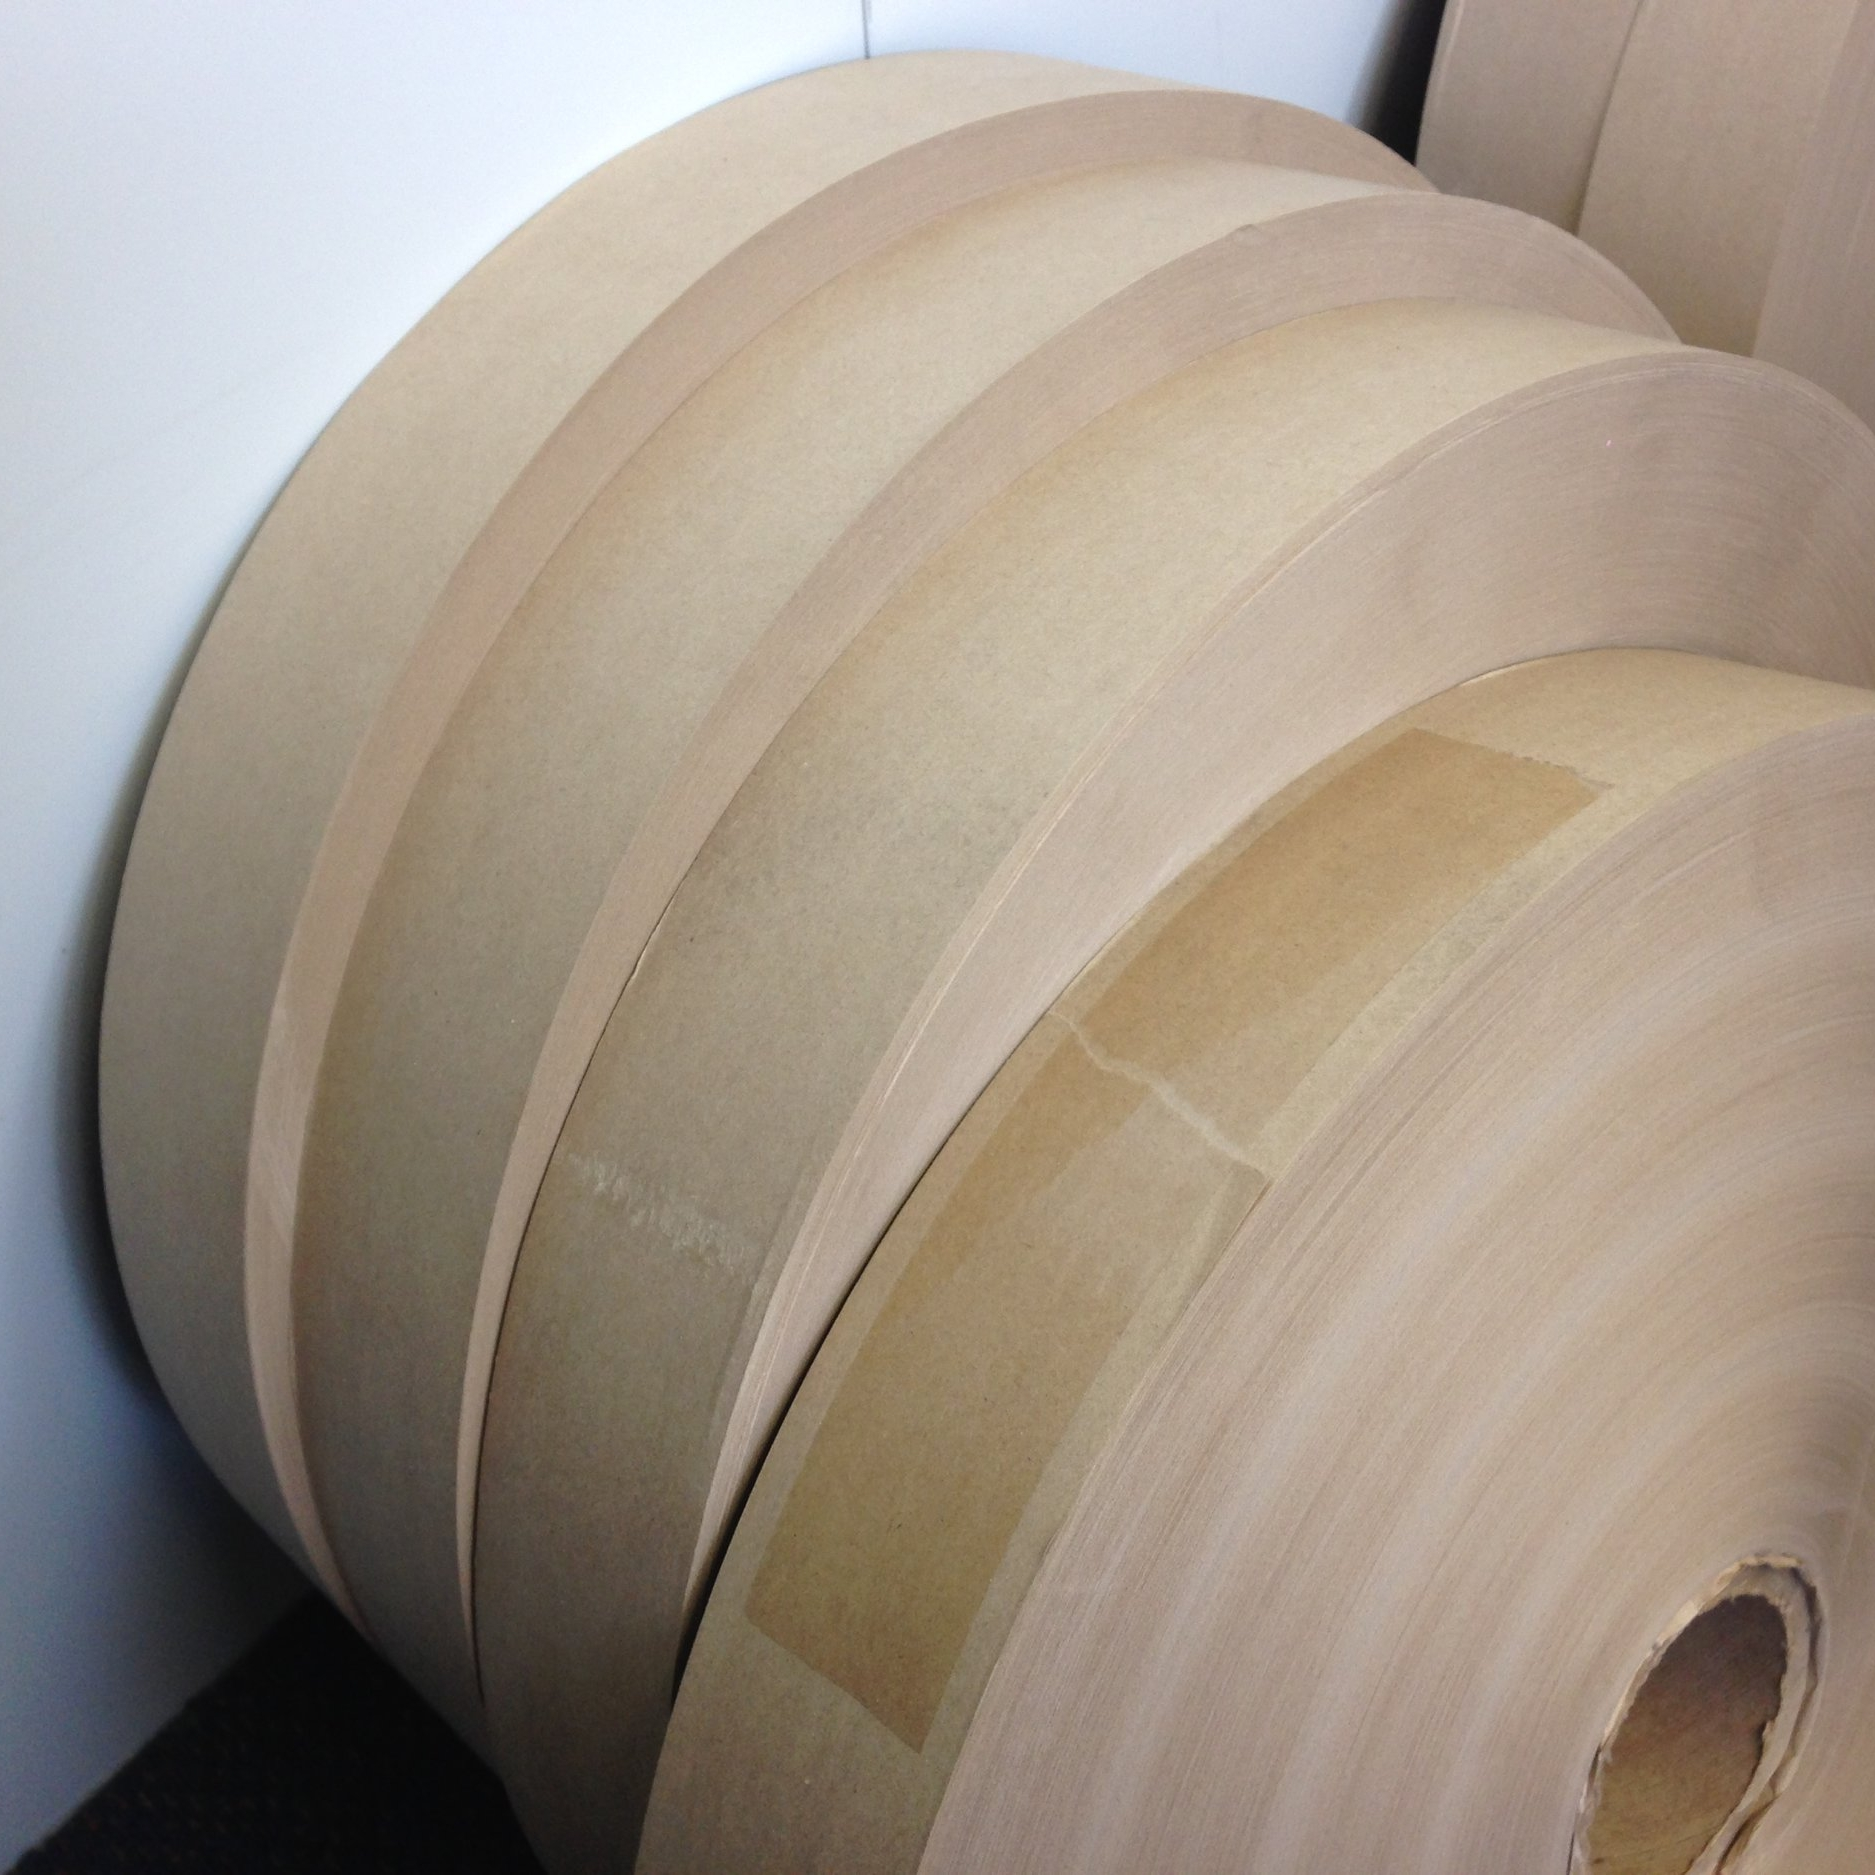 Paper and glue from New Zealand - Kraft paper is porous with high elasticity and high tear resistance.Completely biodegradable the rough texture helps absorb water and break down quicker.Our glue is a custom mix for our machine, specially made just for us.